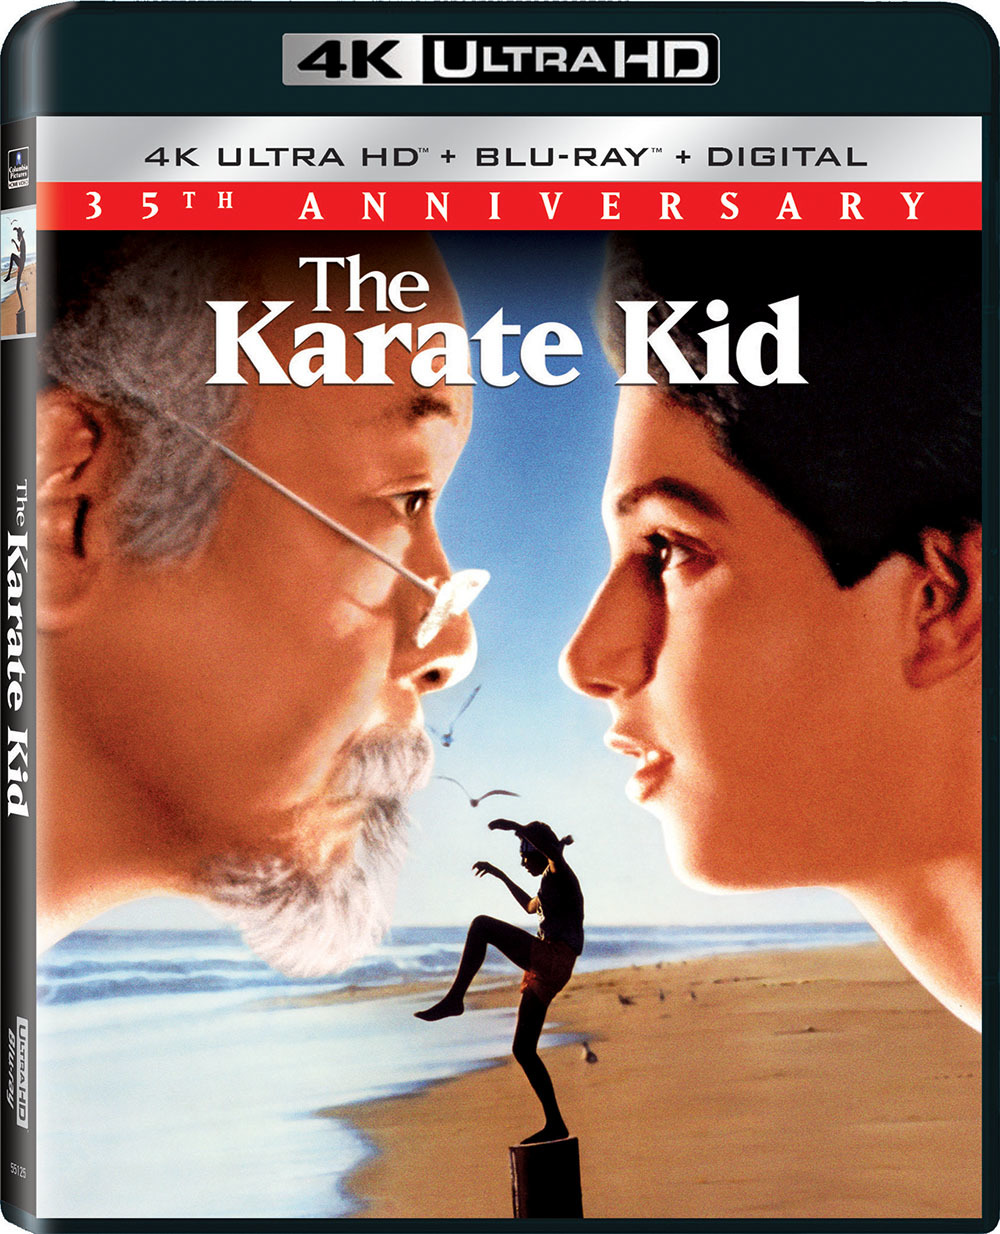 The Karate Kid (4K Ultra HD Blu-ray)(Pre-order / Apr 16)